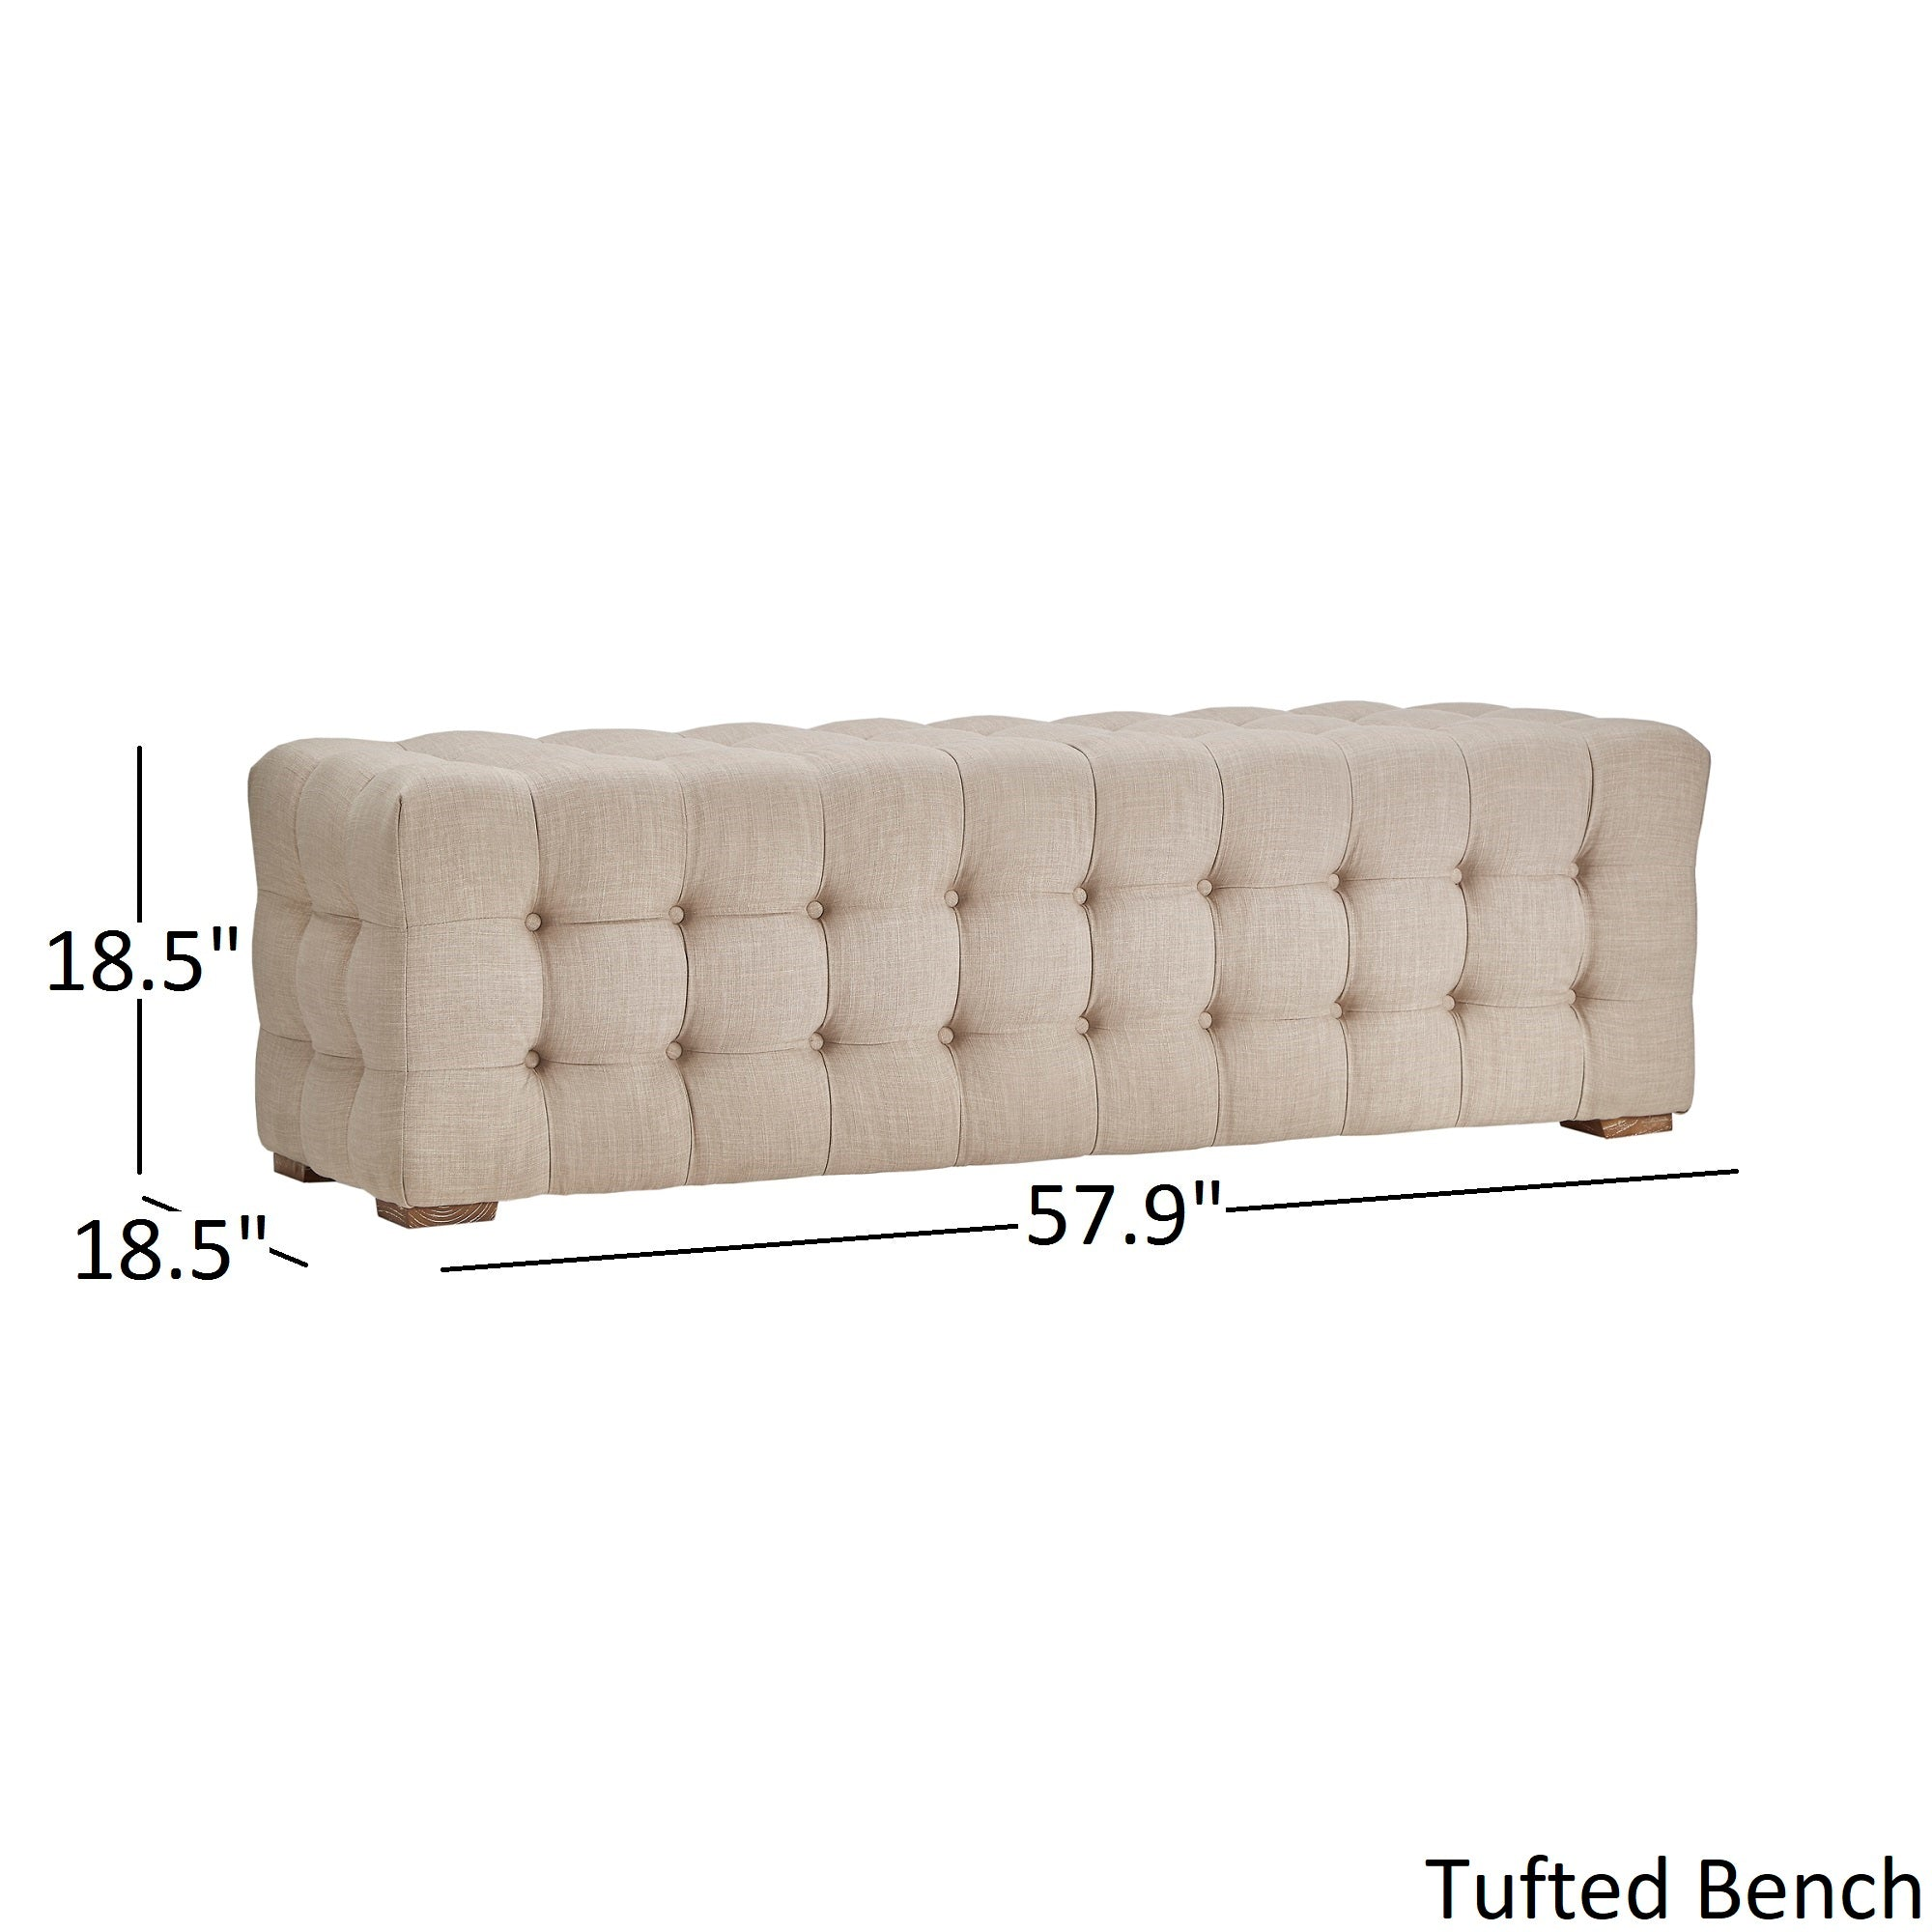 Linen Fabric Tufted Bench - Grey